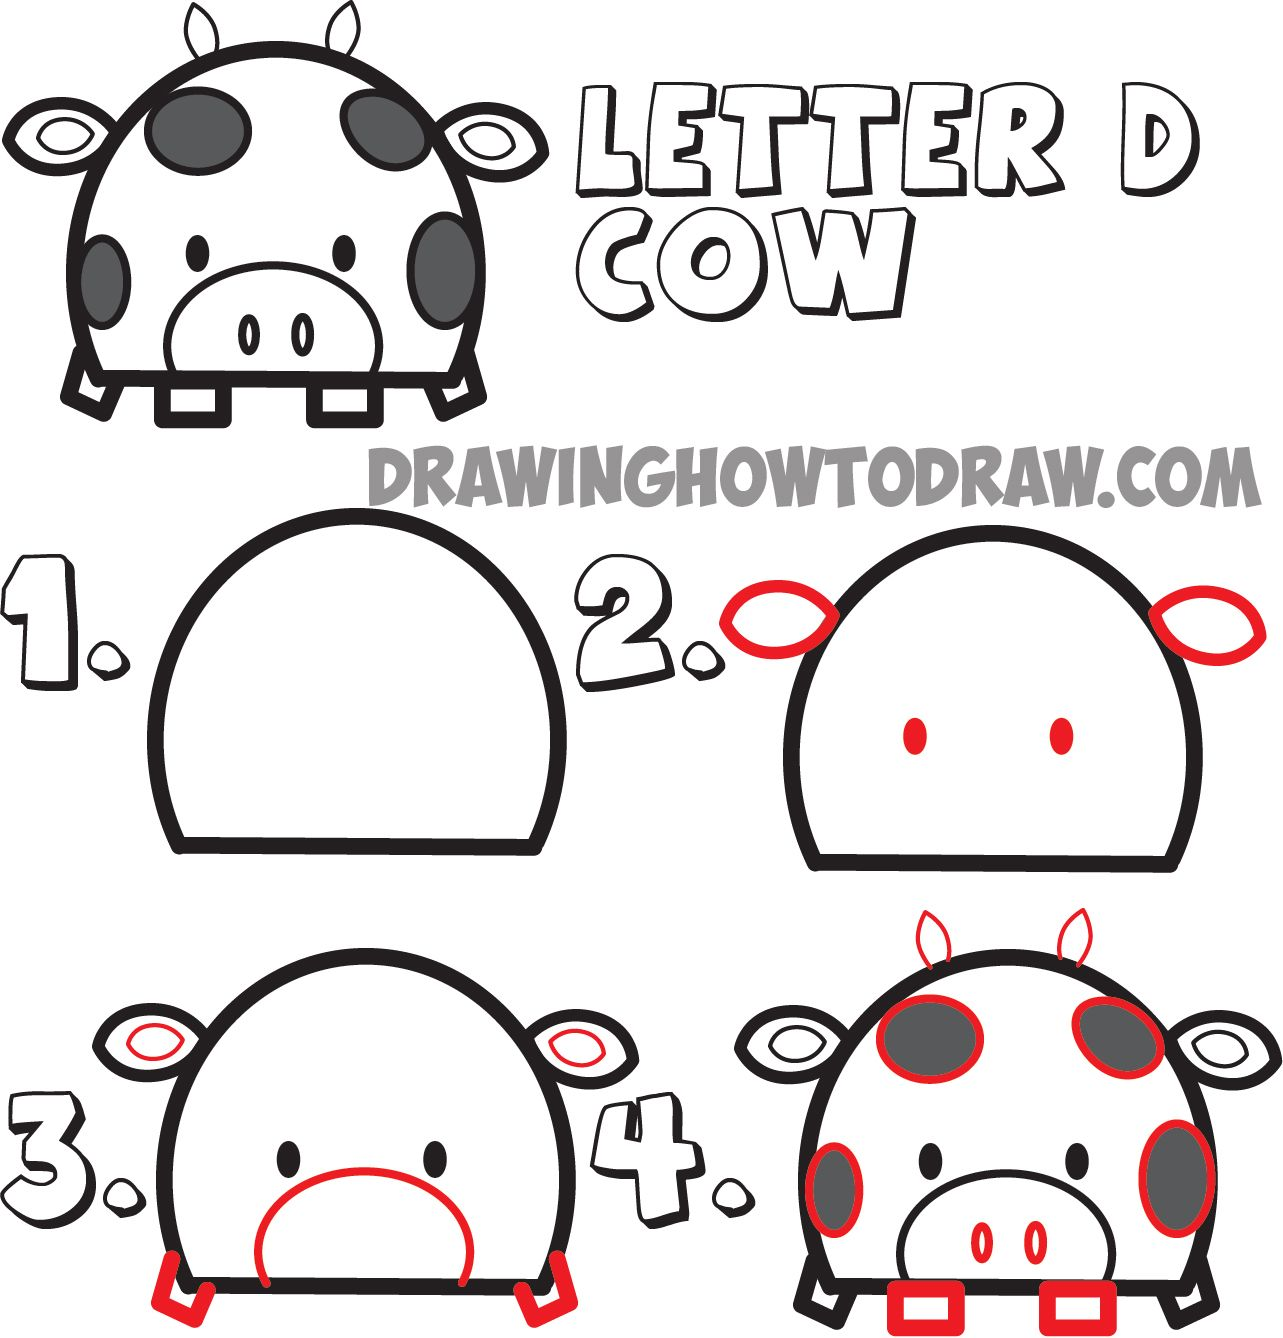 Uncategorized Easy Cartoon Animals To Draw how to draw cartoon cows from uppercase letter d shape rylie huge guide drawing animals the tutorial for kids step by tut